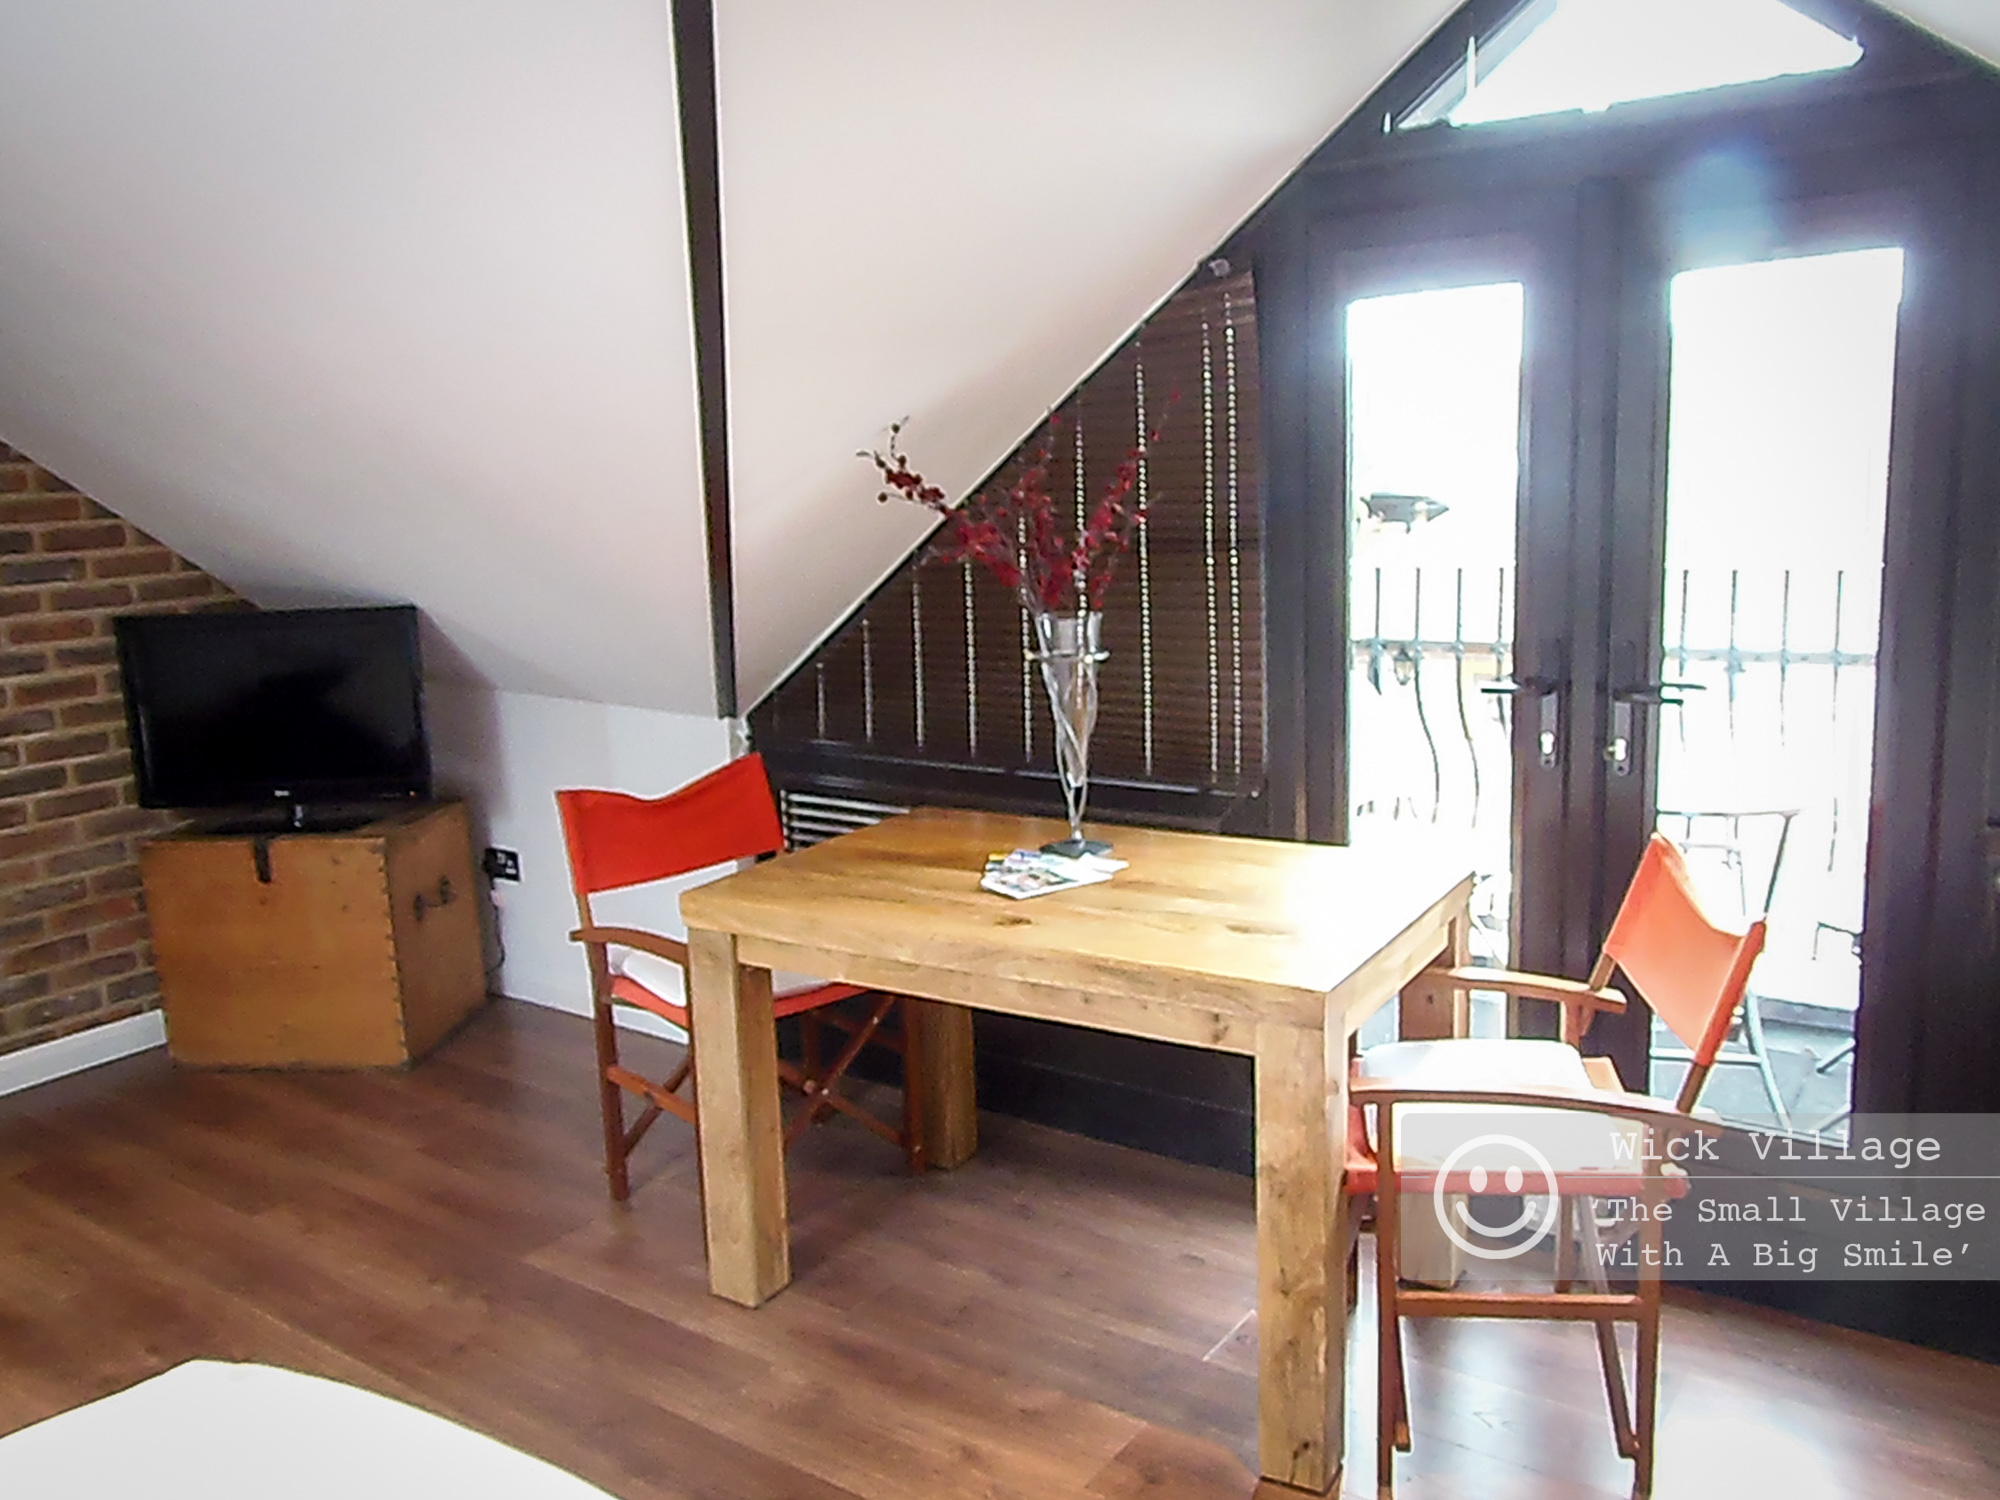 The interior of Hunters Hide Self-Catering Apartment in Lyminster, West Sussex.